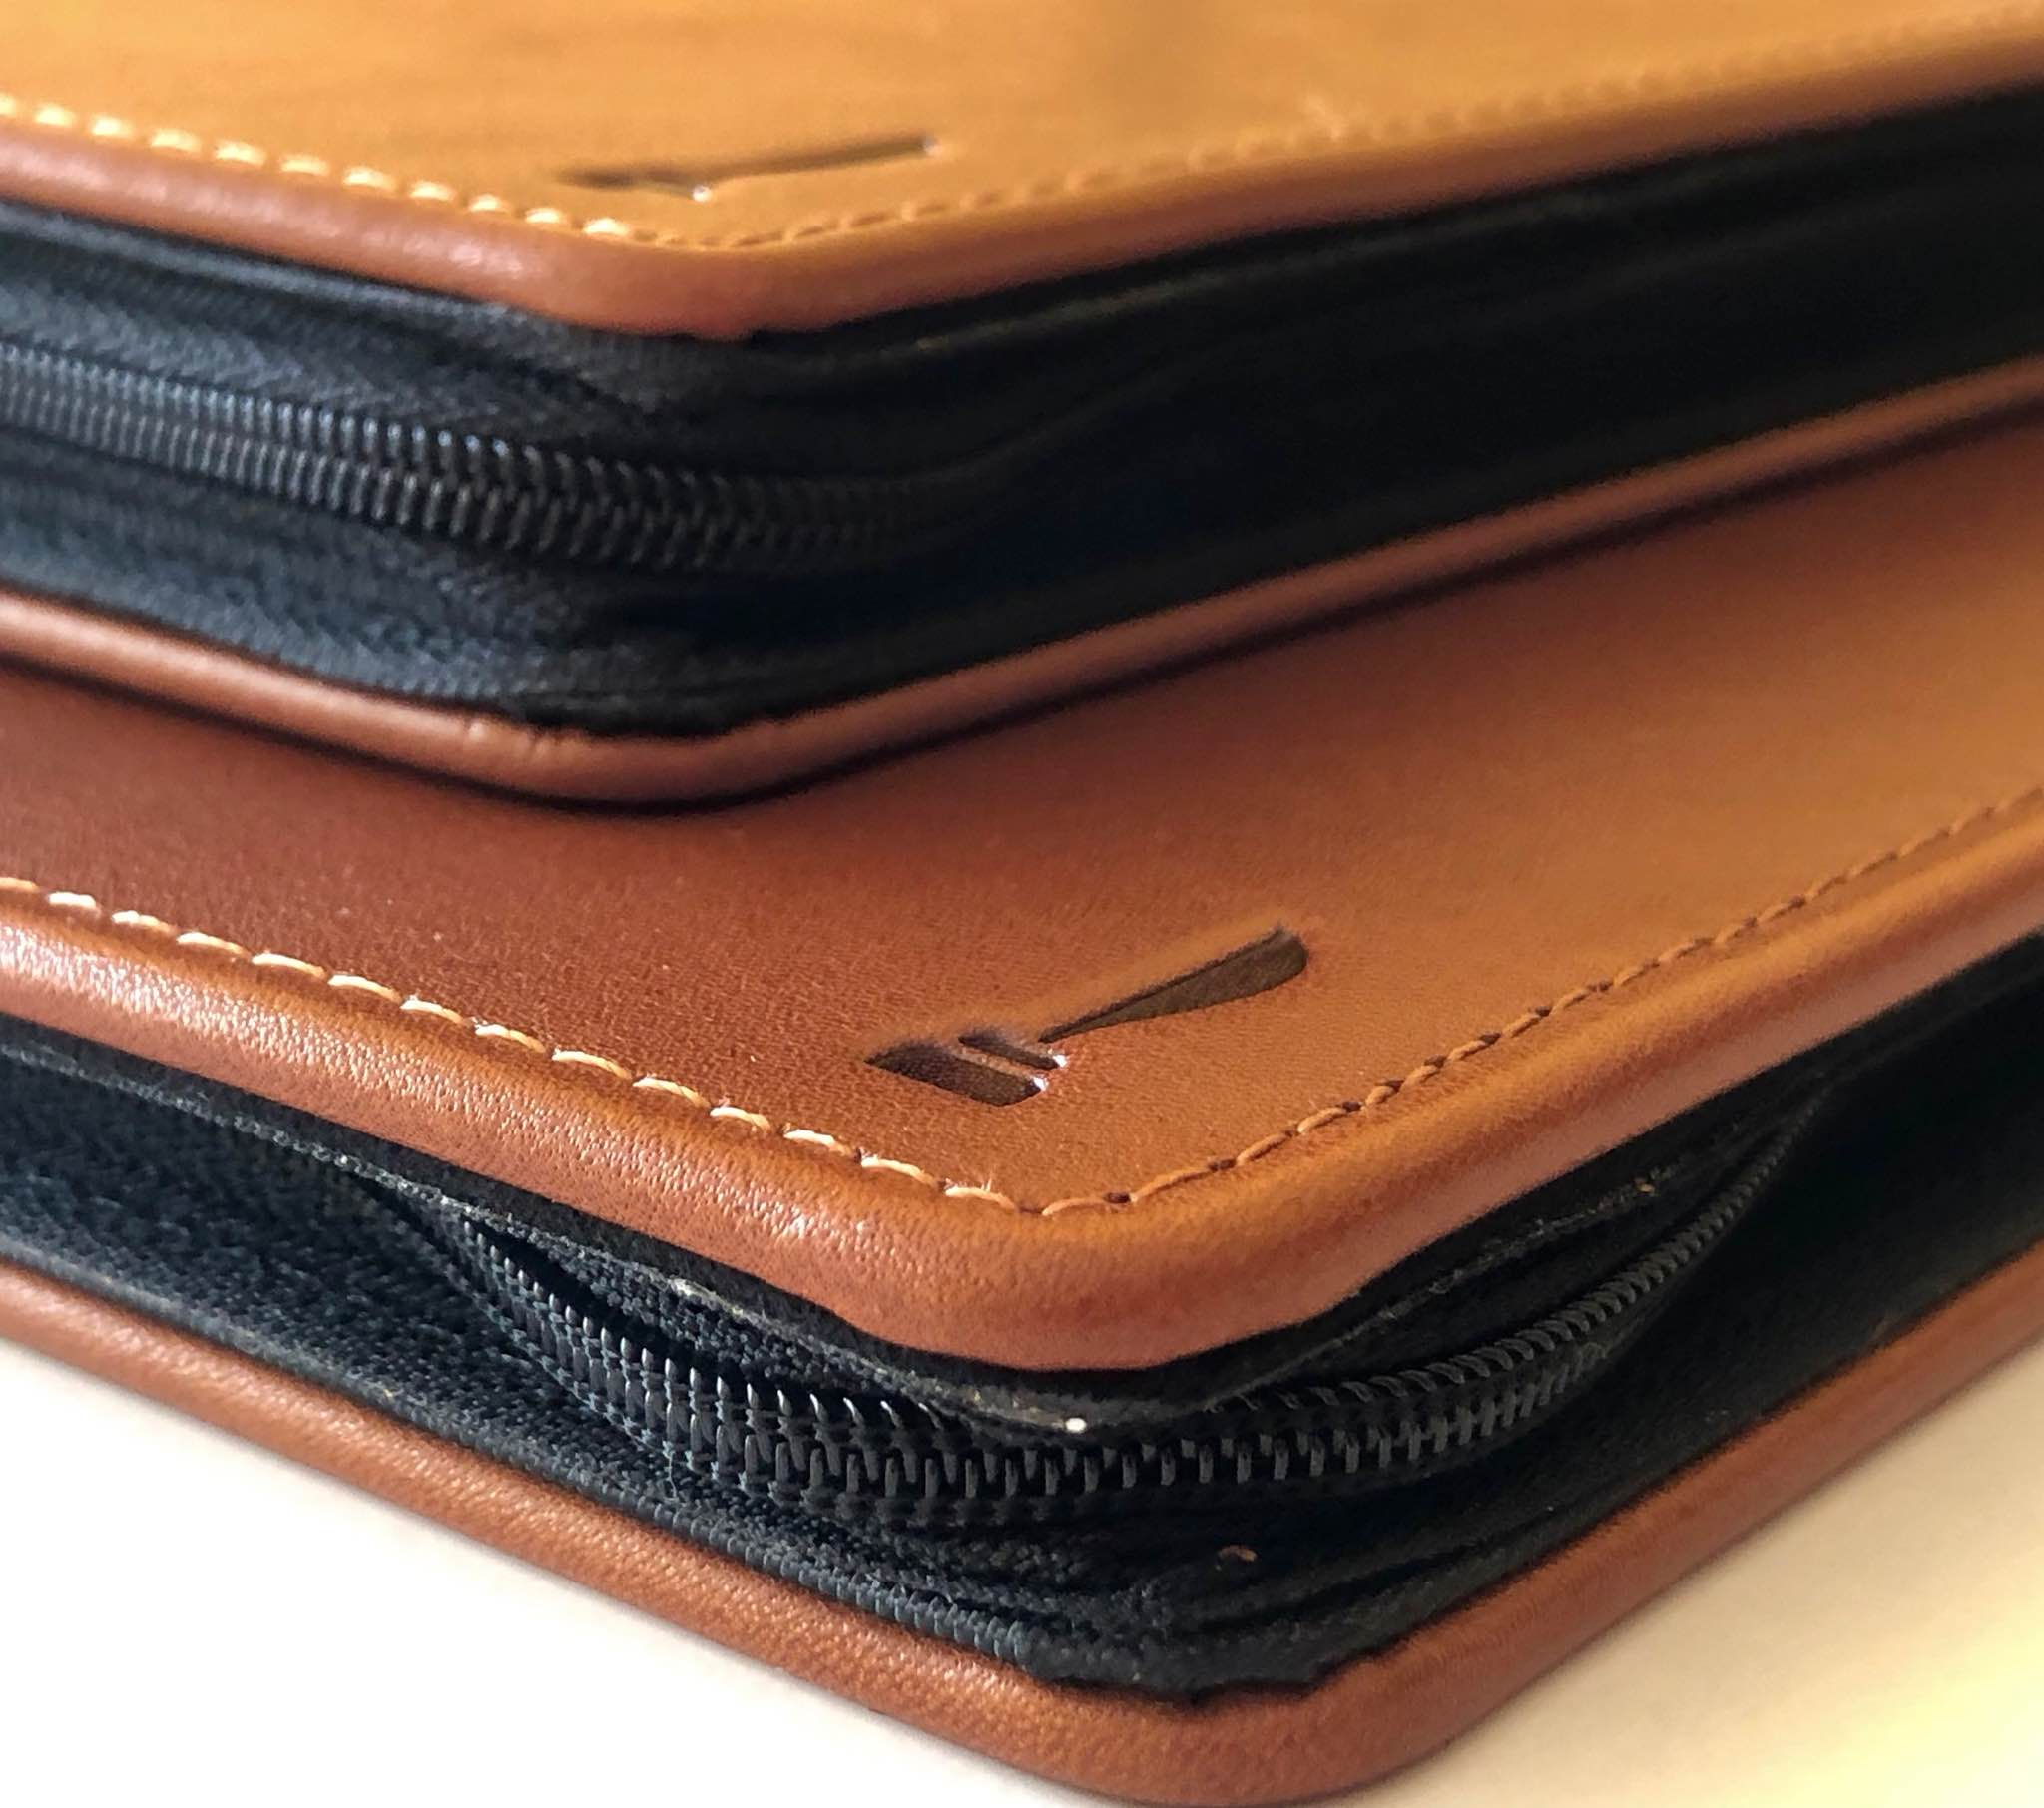 Twelve South's MacBook cases are made from top quality leather